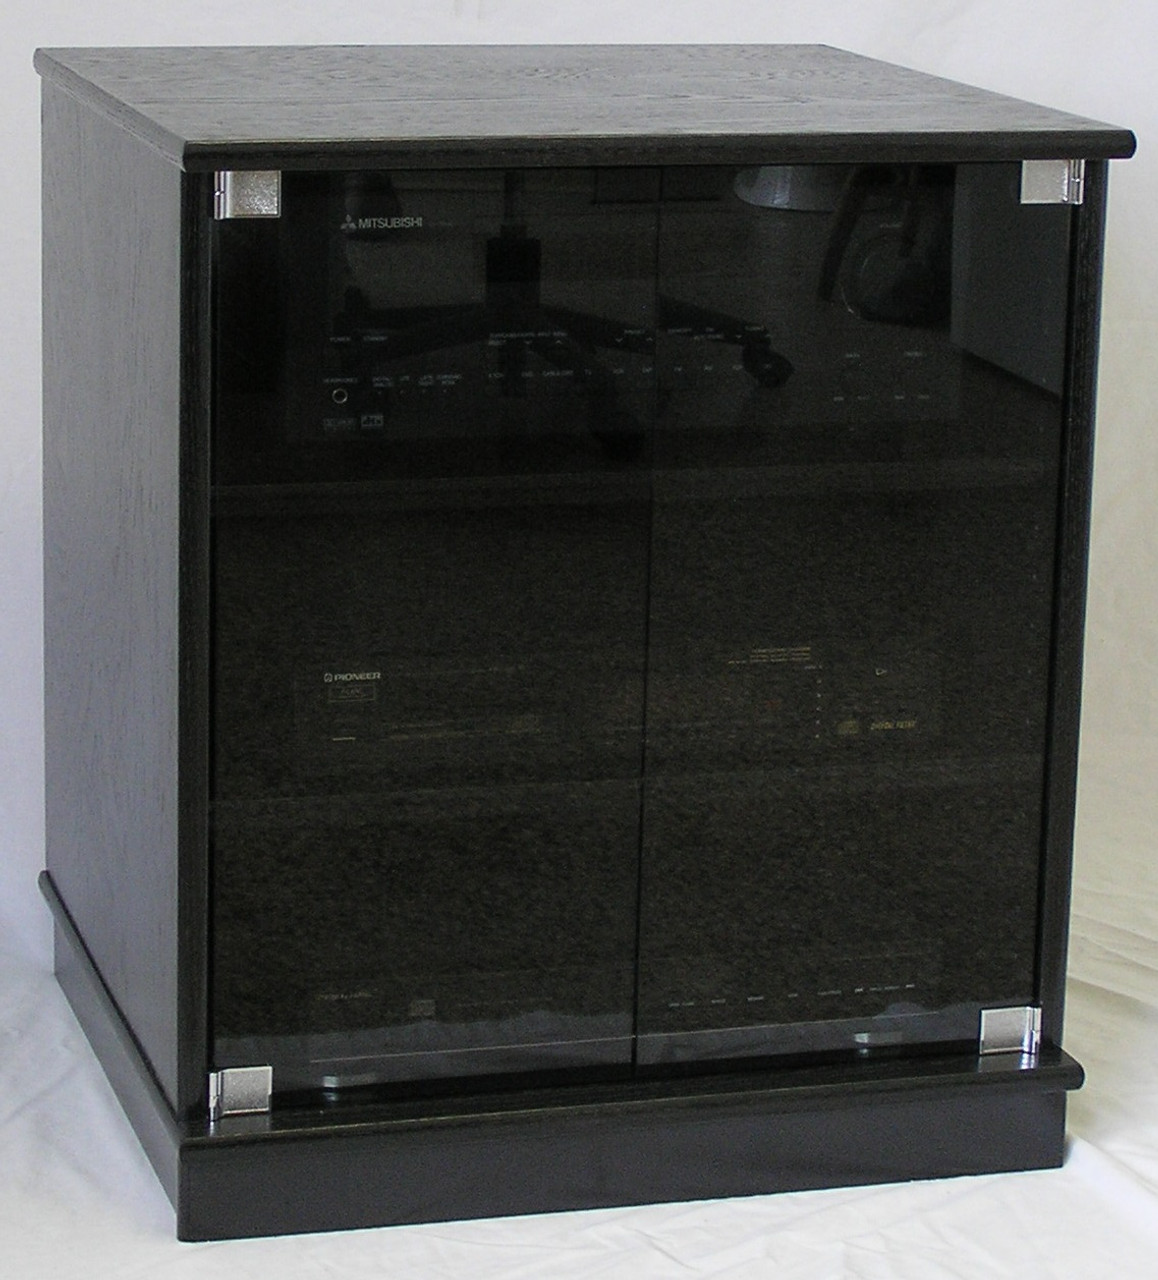 glass door furniture. Full Front View Of Small Black Oak TV Stand With Gray Tint Glass Doors Entertainment Center Door Furniture N